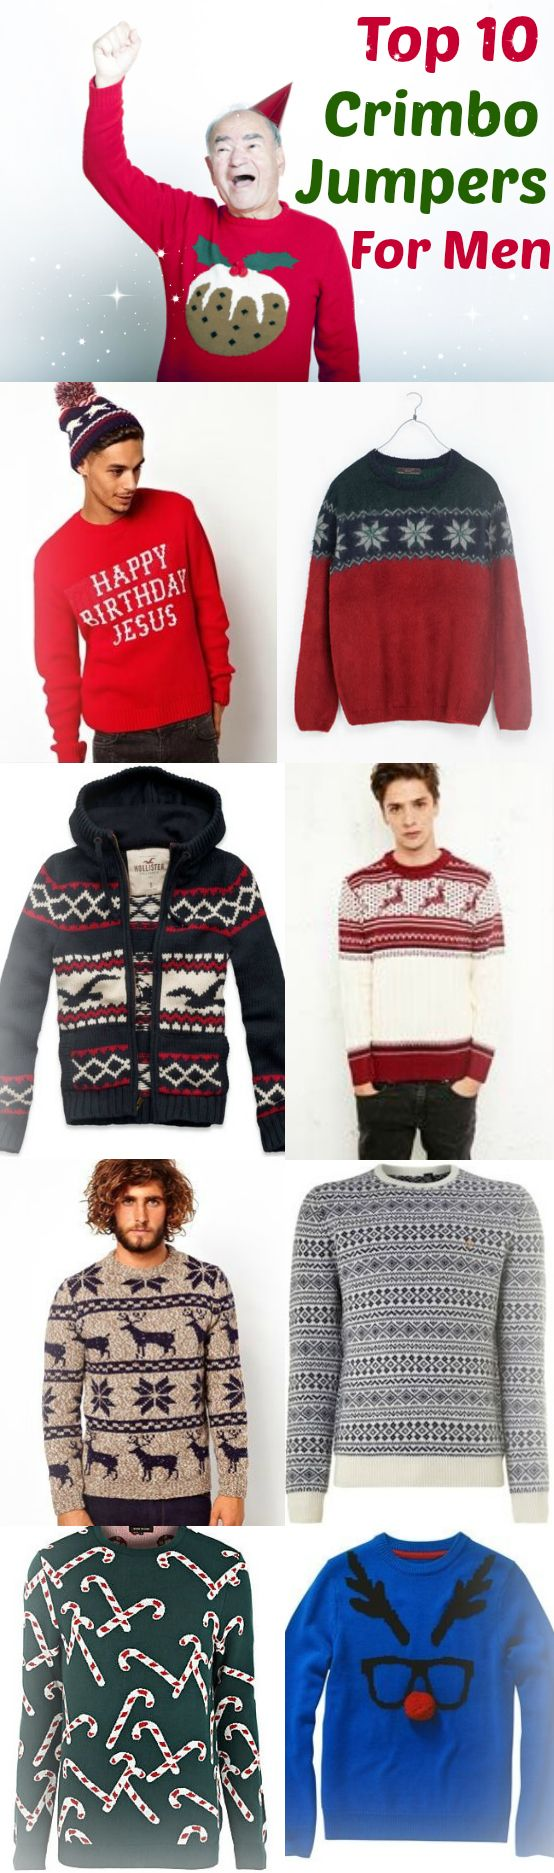 Top 10 Christmas Jumpers / Sweaters For Men. They are the perfect gift for Christmas Day. Take a look at them here http://www.totalswindon.com/shopping/top-10-mens-christmas-jumpers-2013/ #Christmas #Sweater